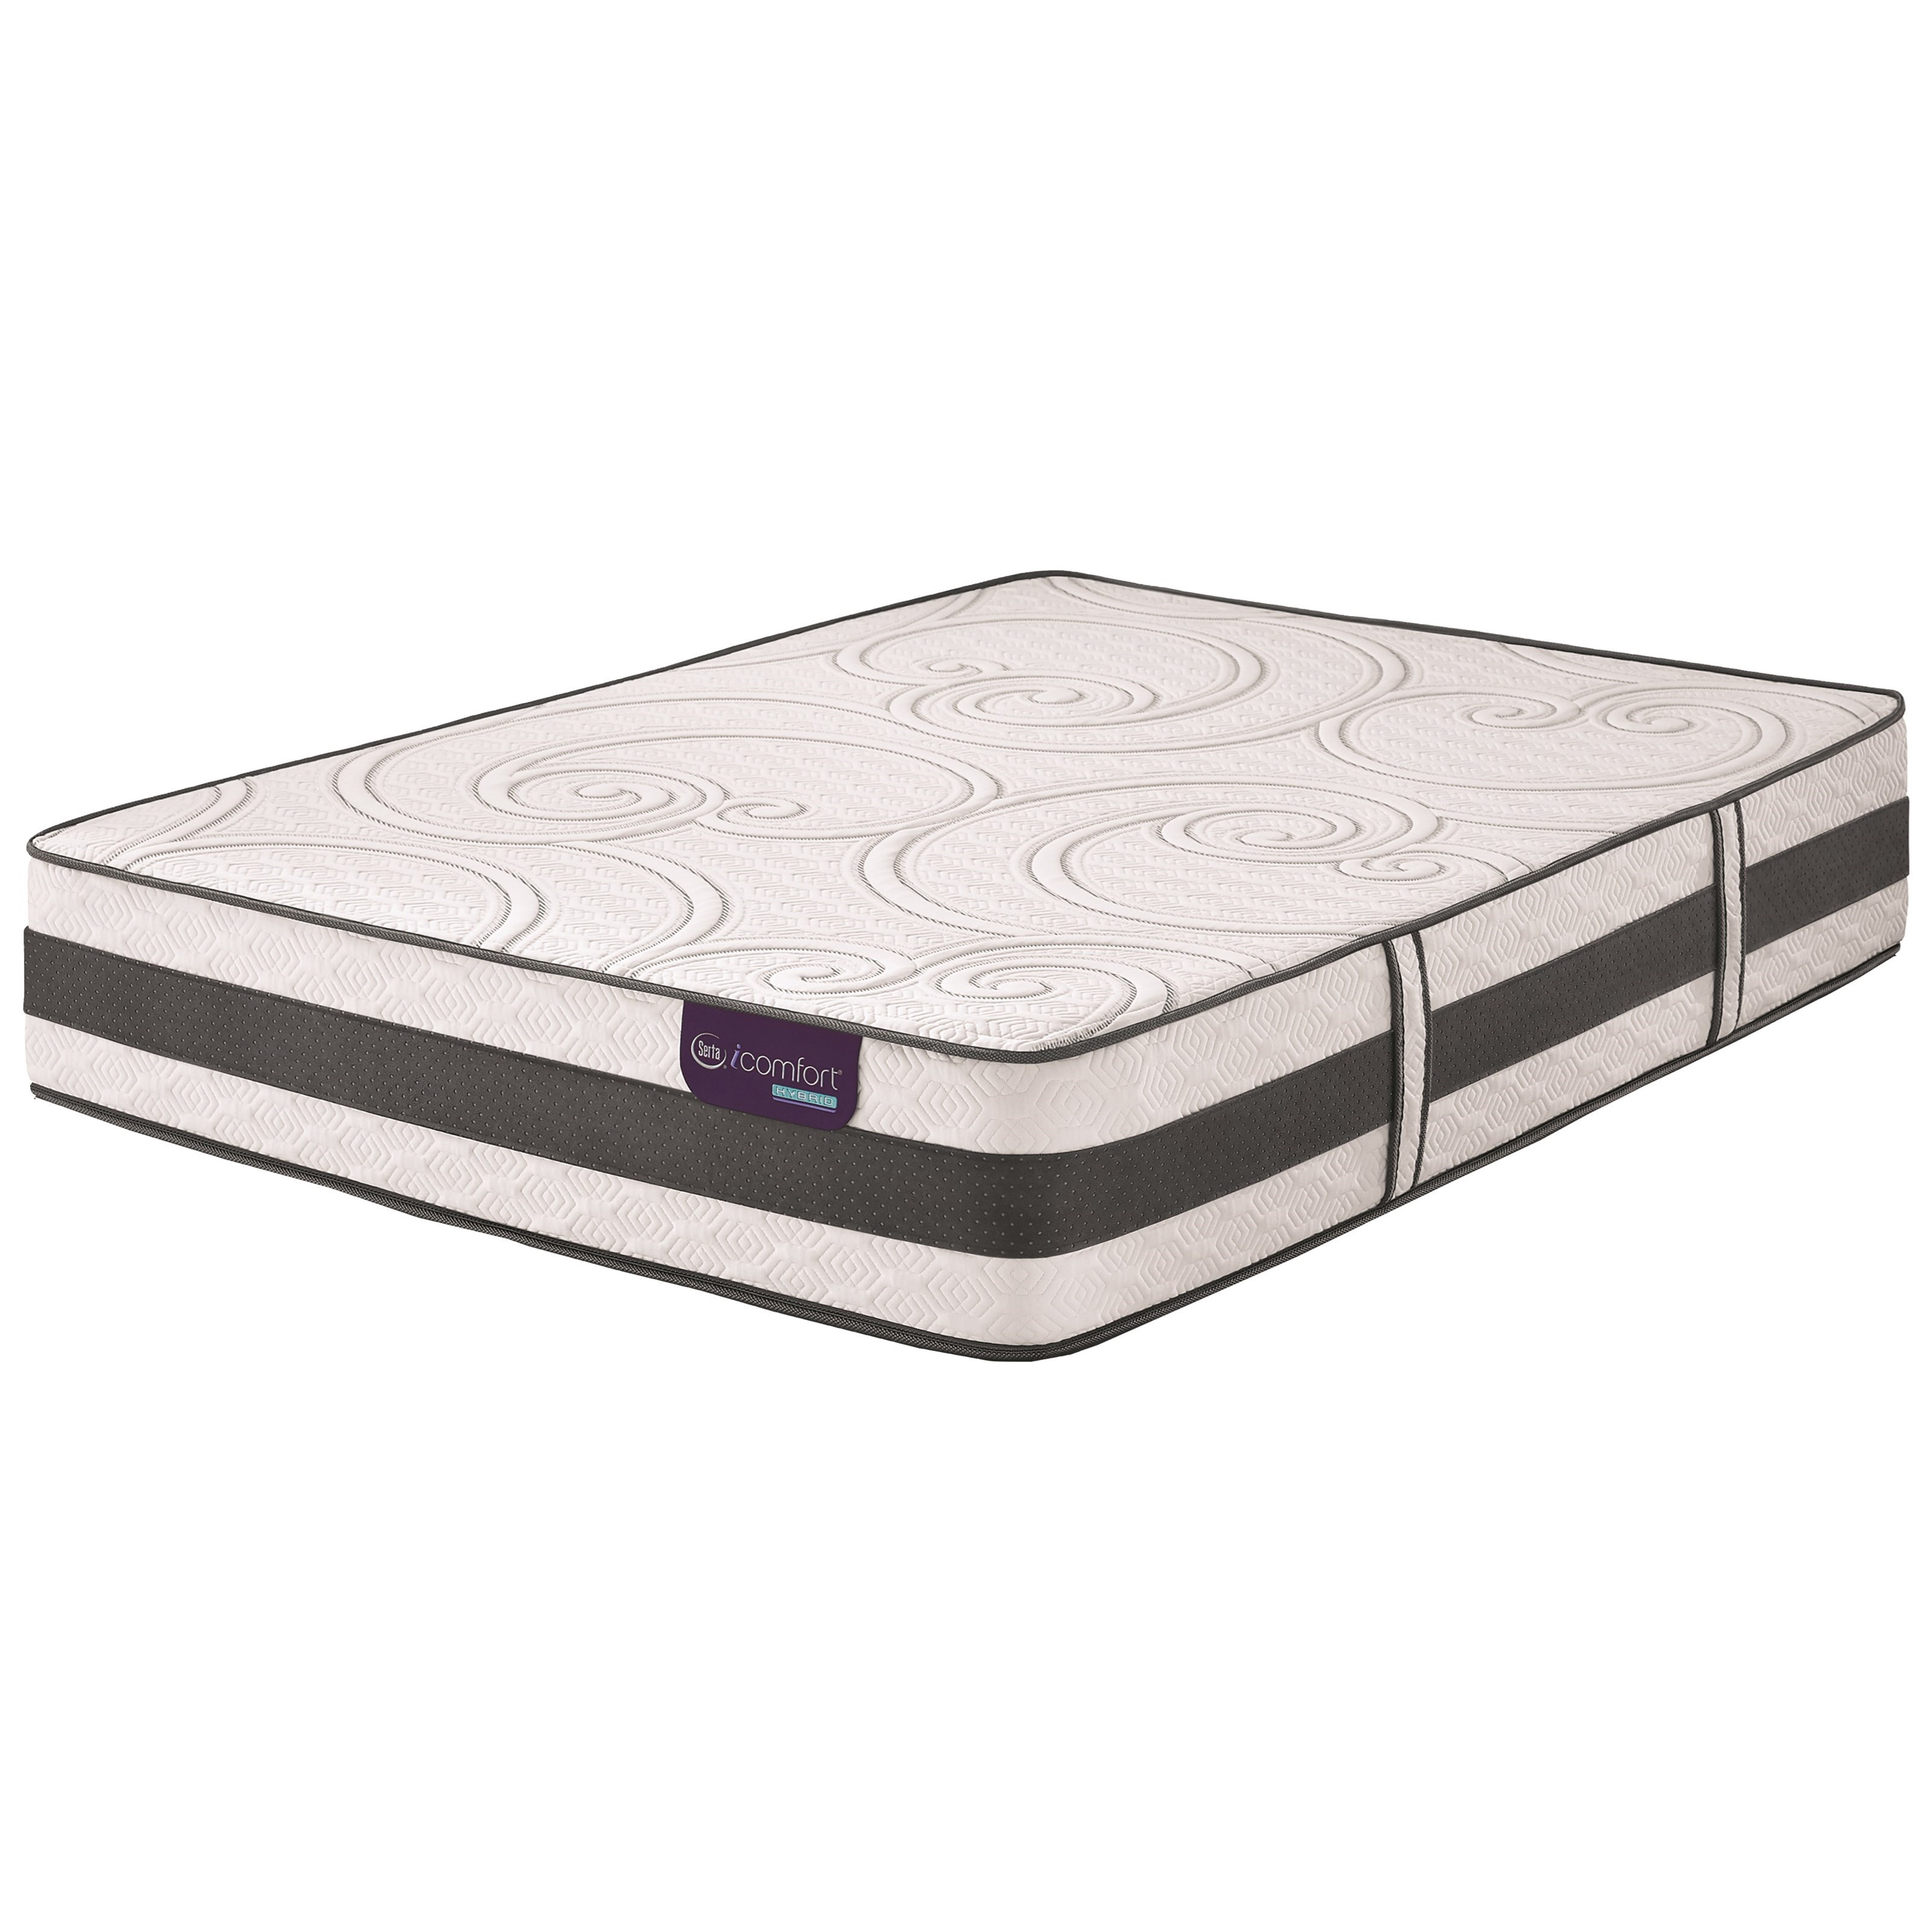 Serta iComfort Hybrid Visionaire Twin XL Firm Hybrid Mattress - Item Number: VisionaireF-TXL